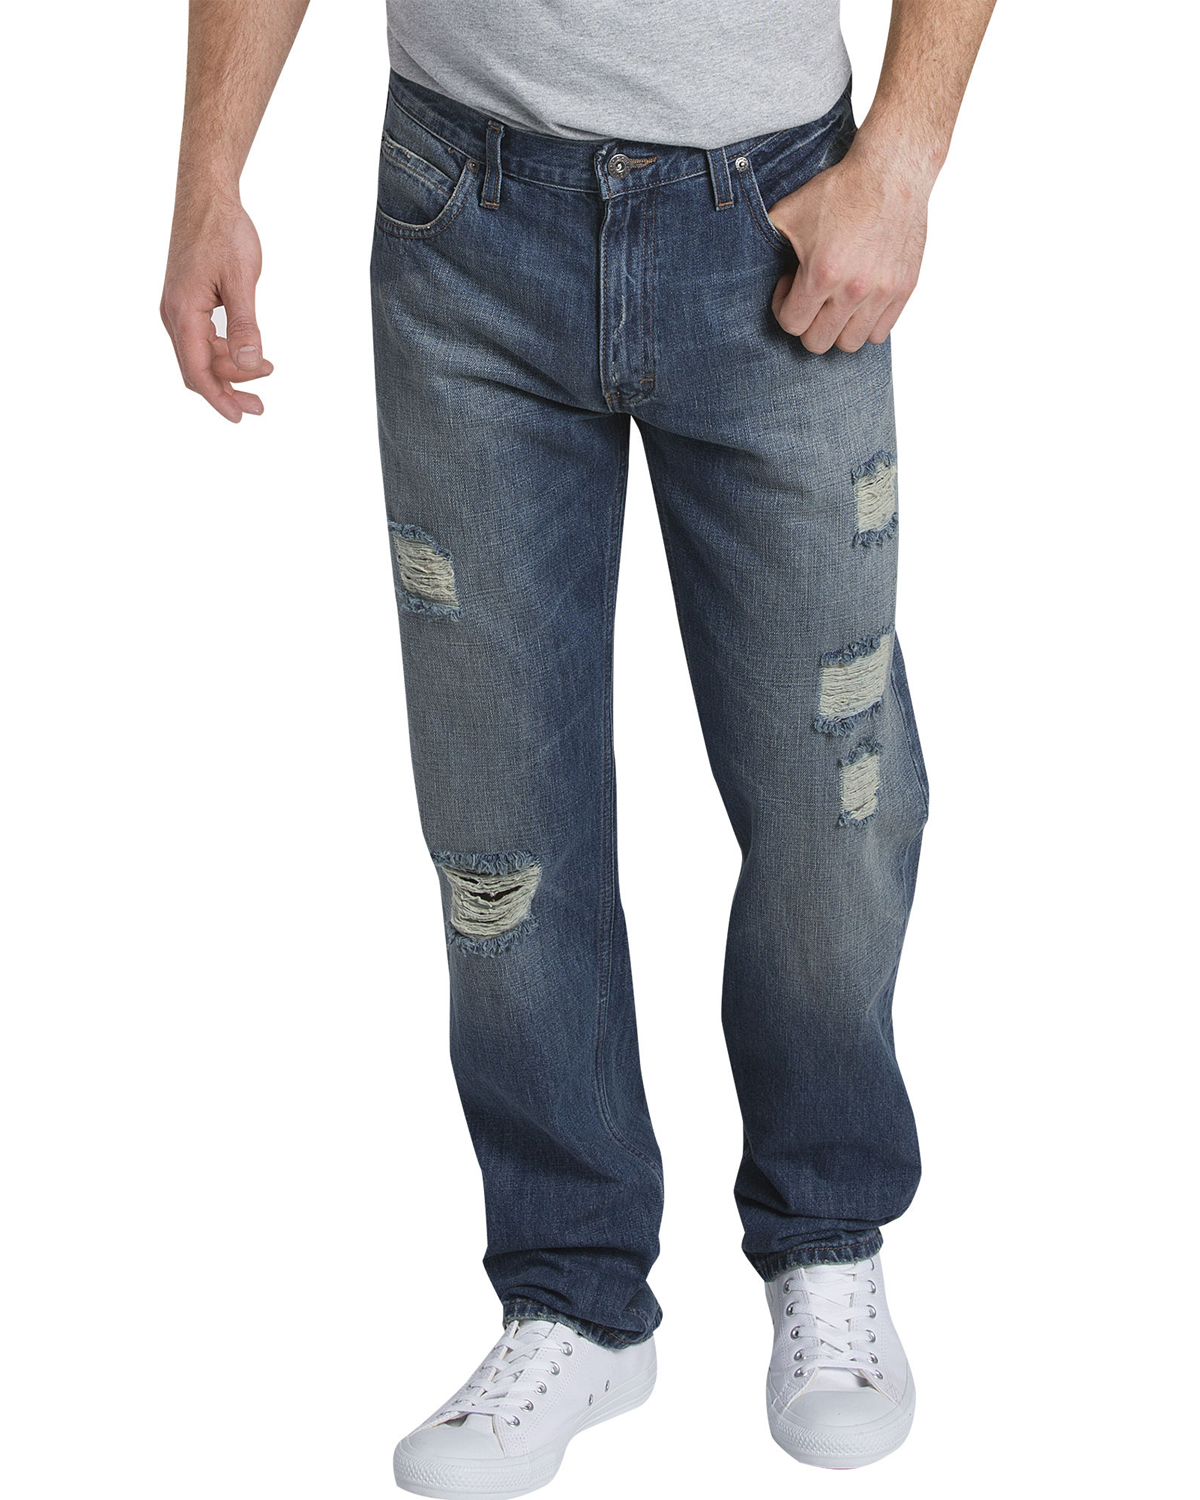 Men's X-Series Relaxed Fit Straight-Leg 5-Pocket Denim Jean Pant